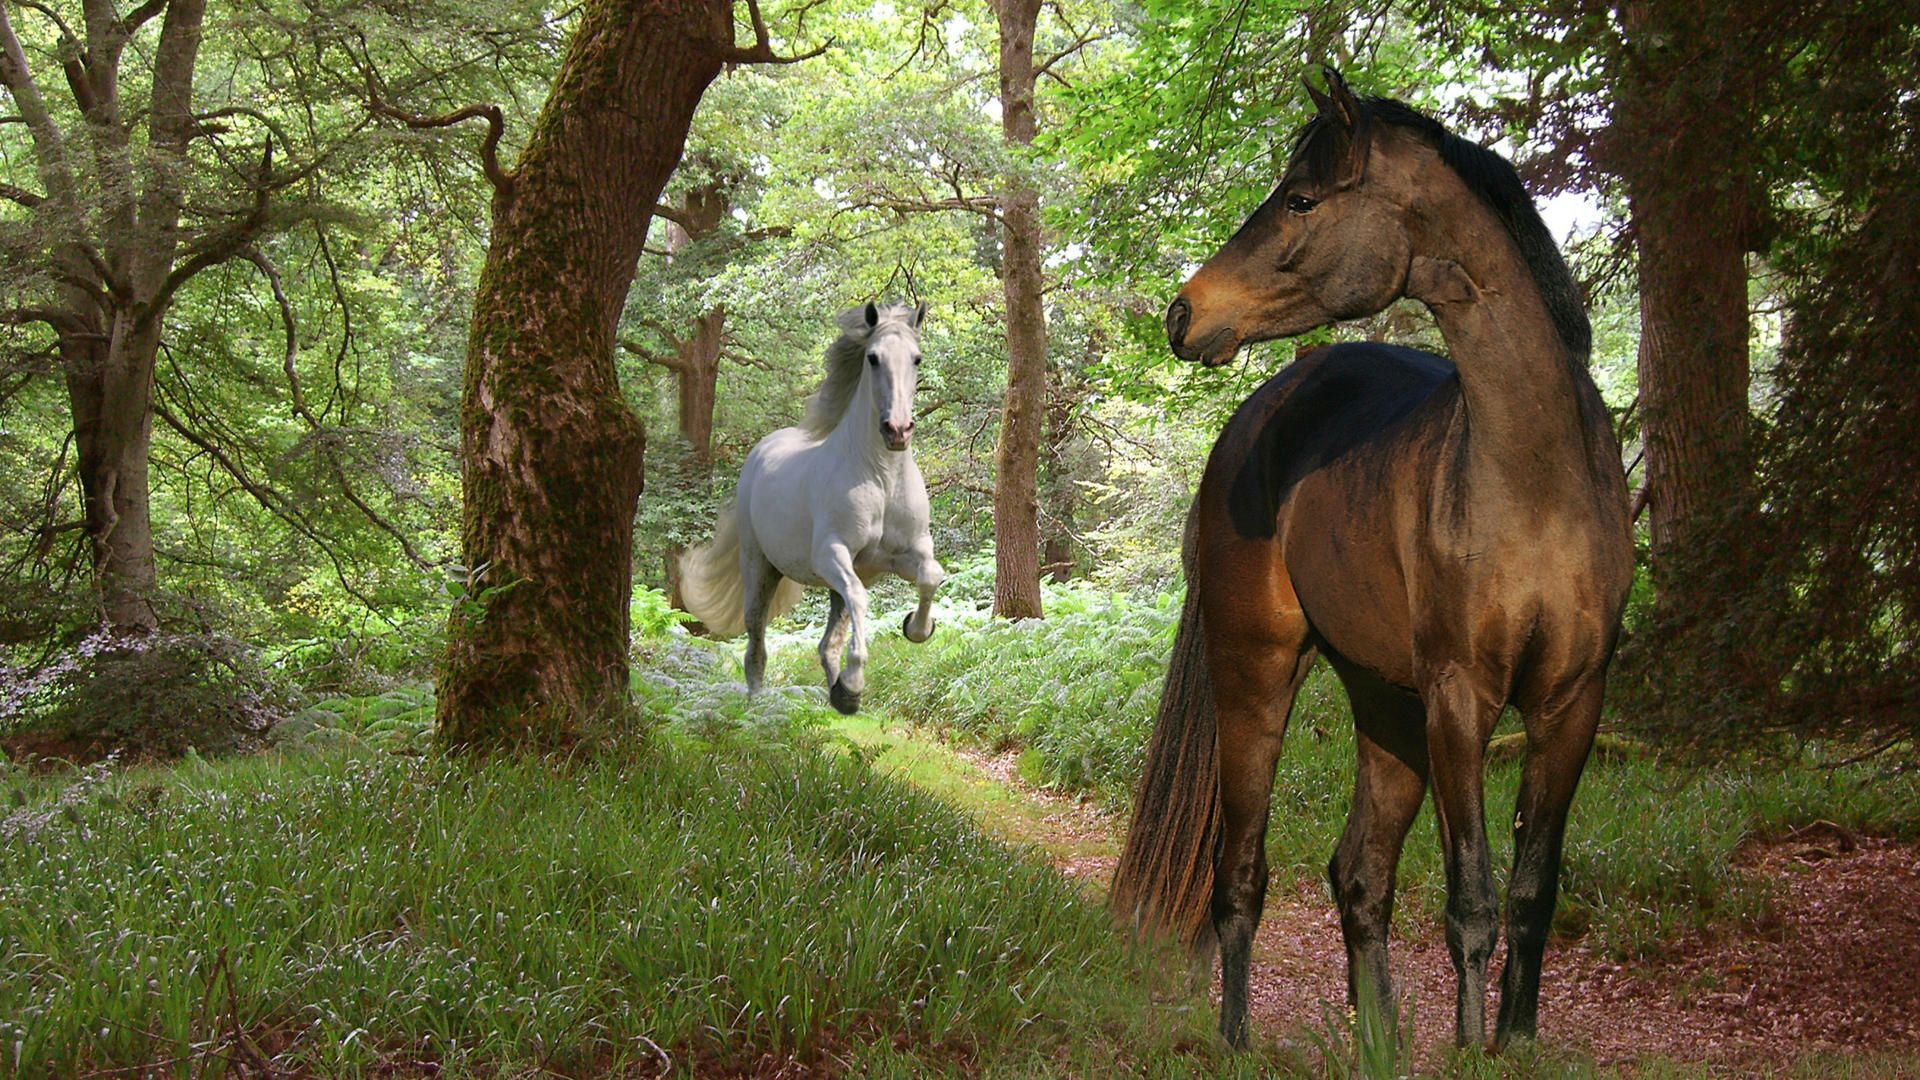 Most Beautiful Horses Wallpapers And Images Wallpapers, - Two Horses In A Forest , HD Wallpaper & Backgrounds